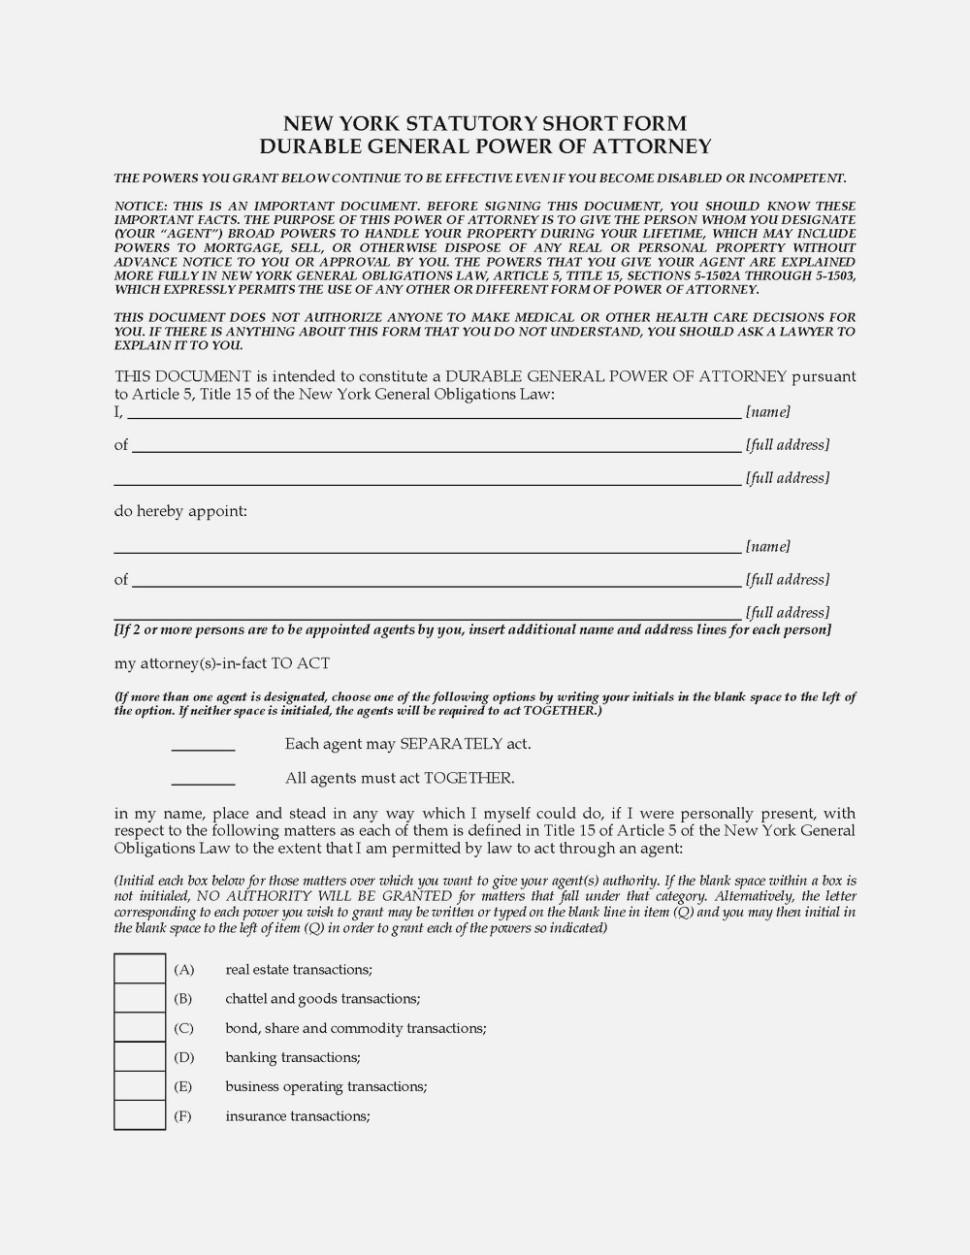 Nys Disability Form Db 450